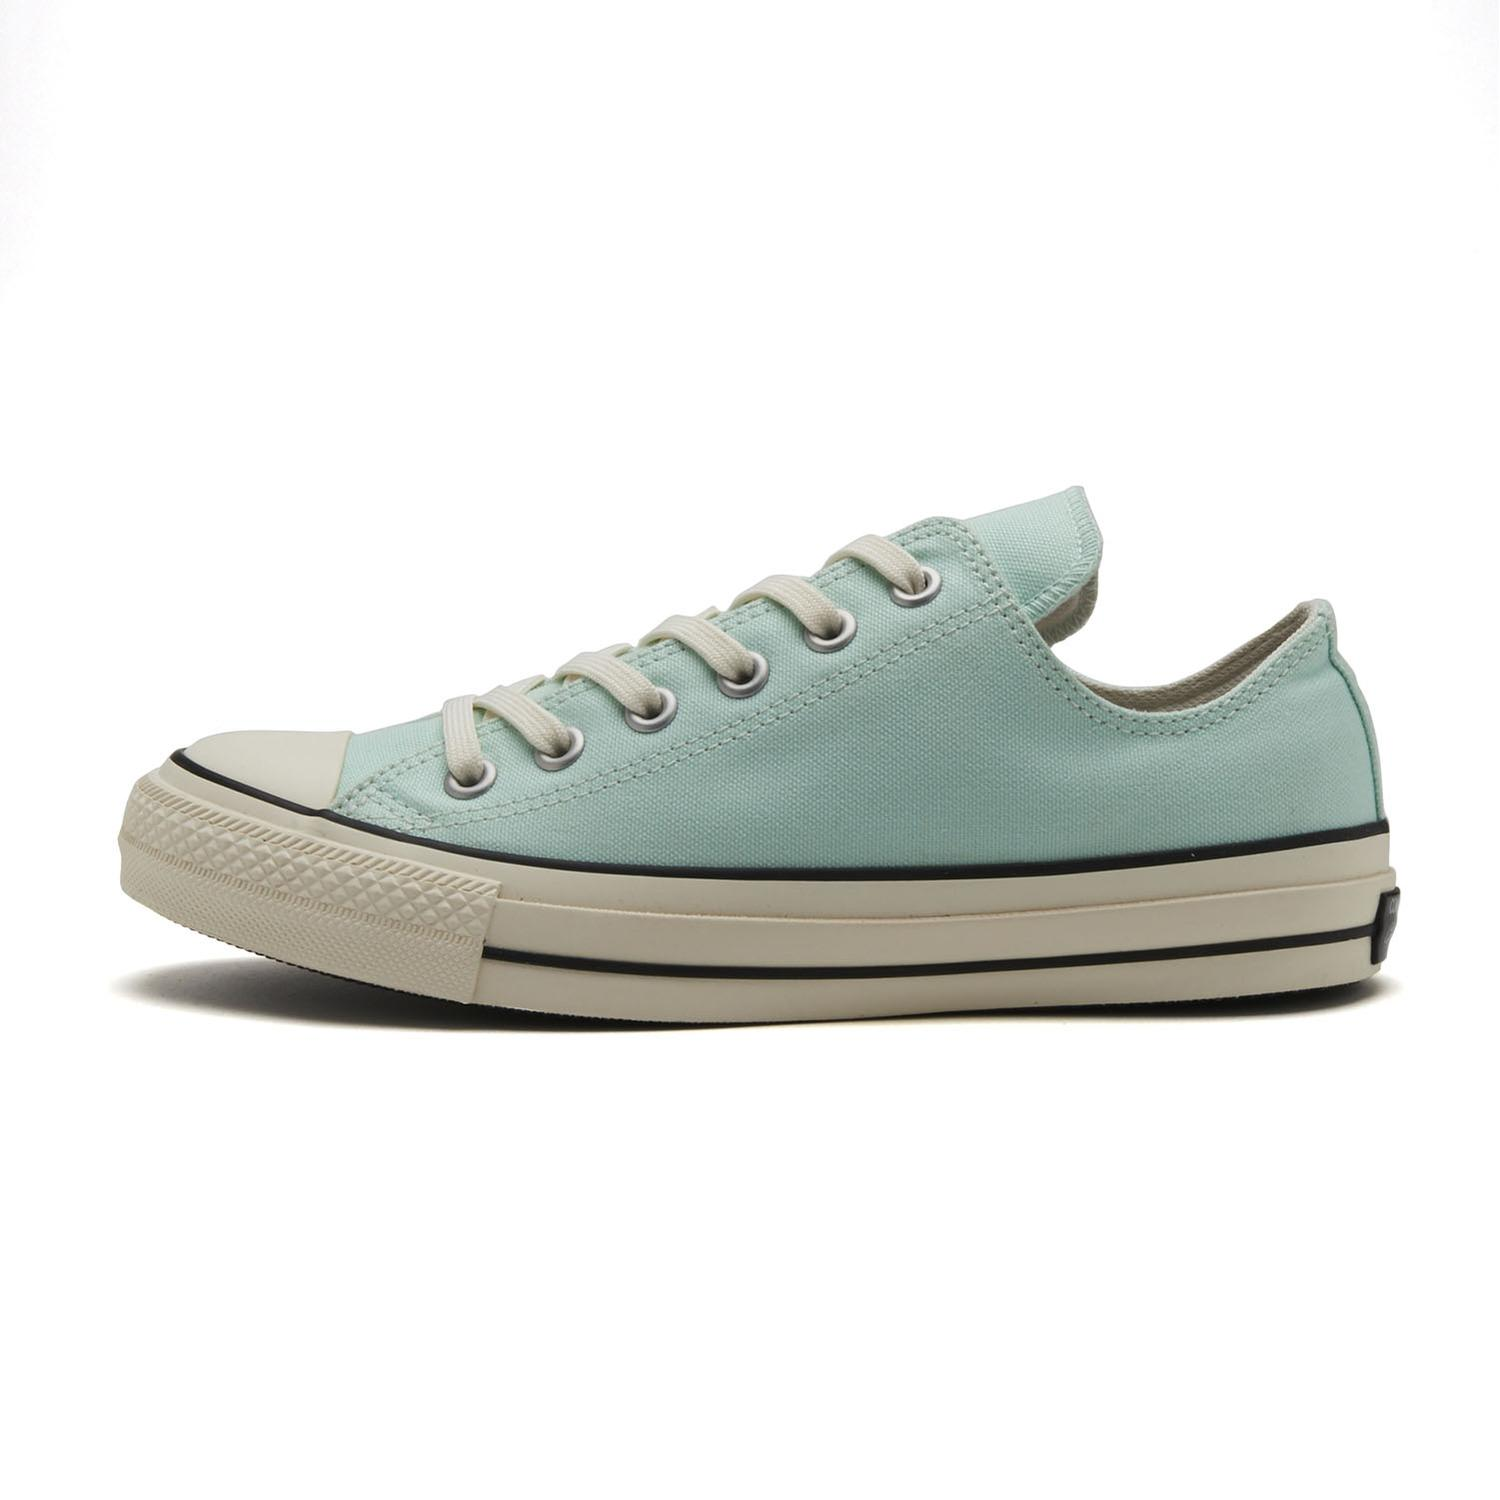 【CONVERSE】 コンバース AS 100 COLORS OX オールスター 100 カラーズ OX 31301320 MINTGREEN